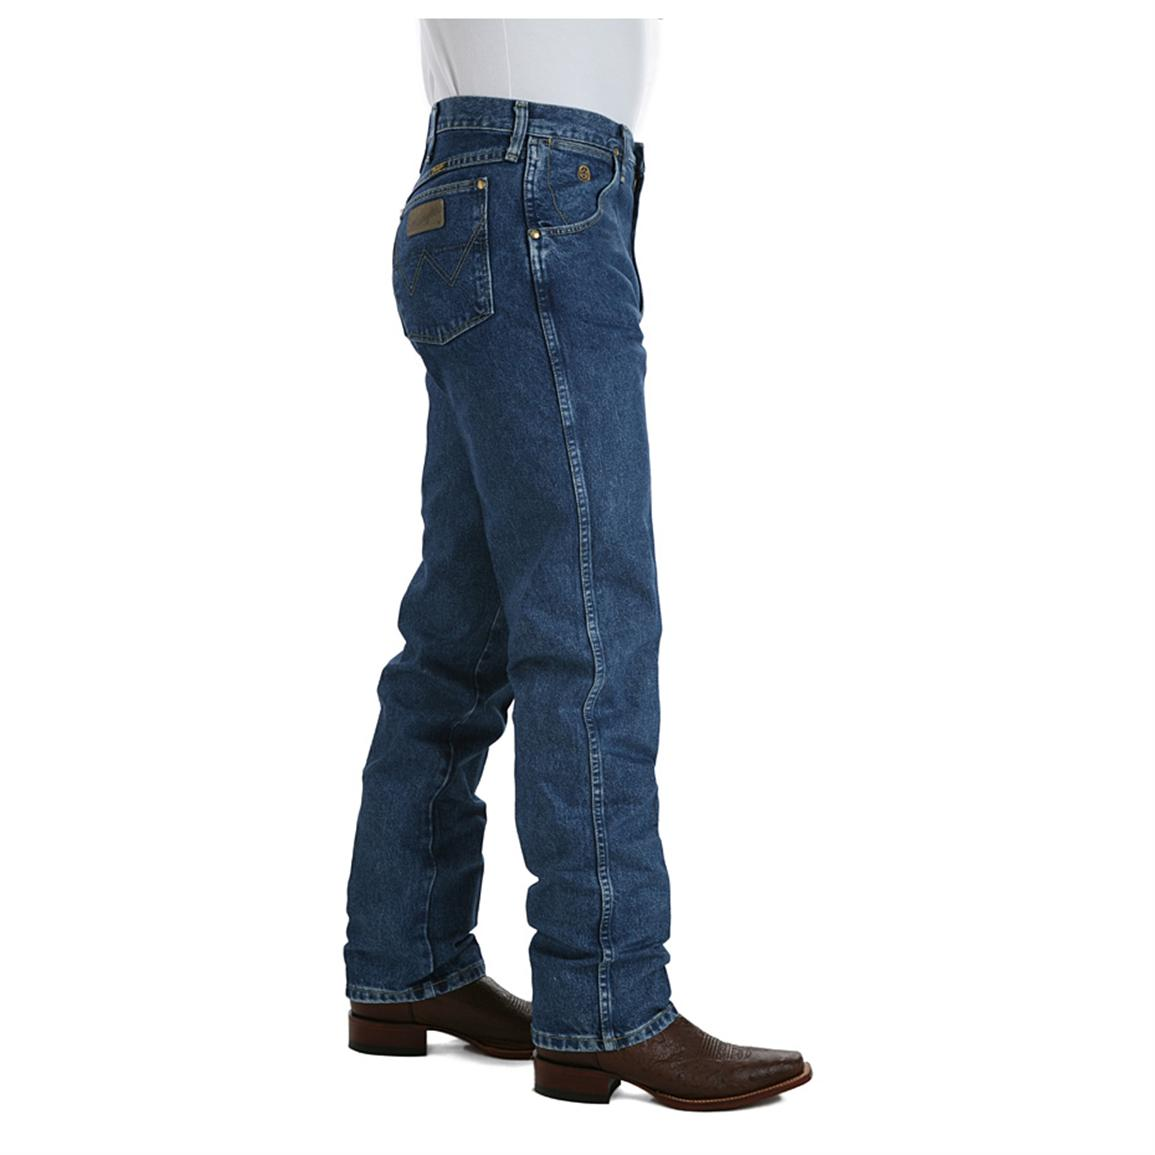 Men's Wrangler® Relaxed Fit George Strait Cowboy Cut Jeans